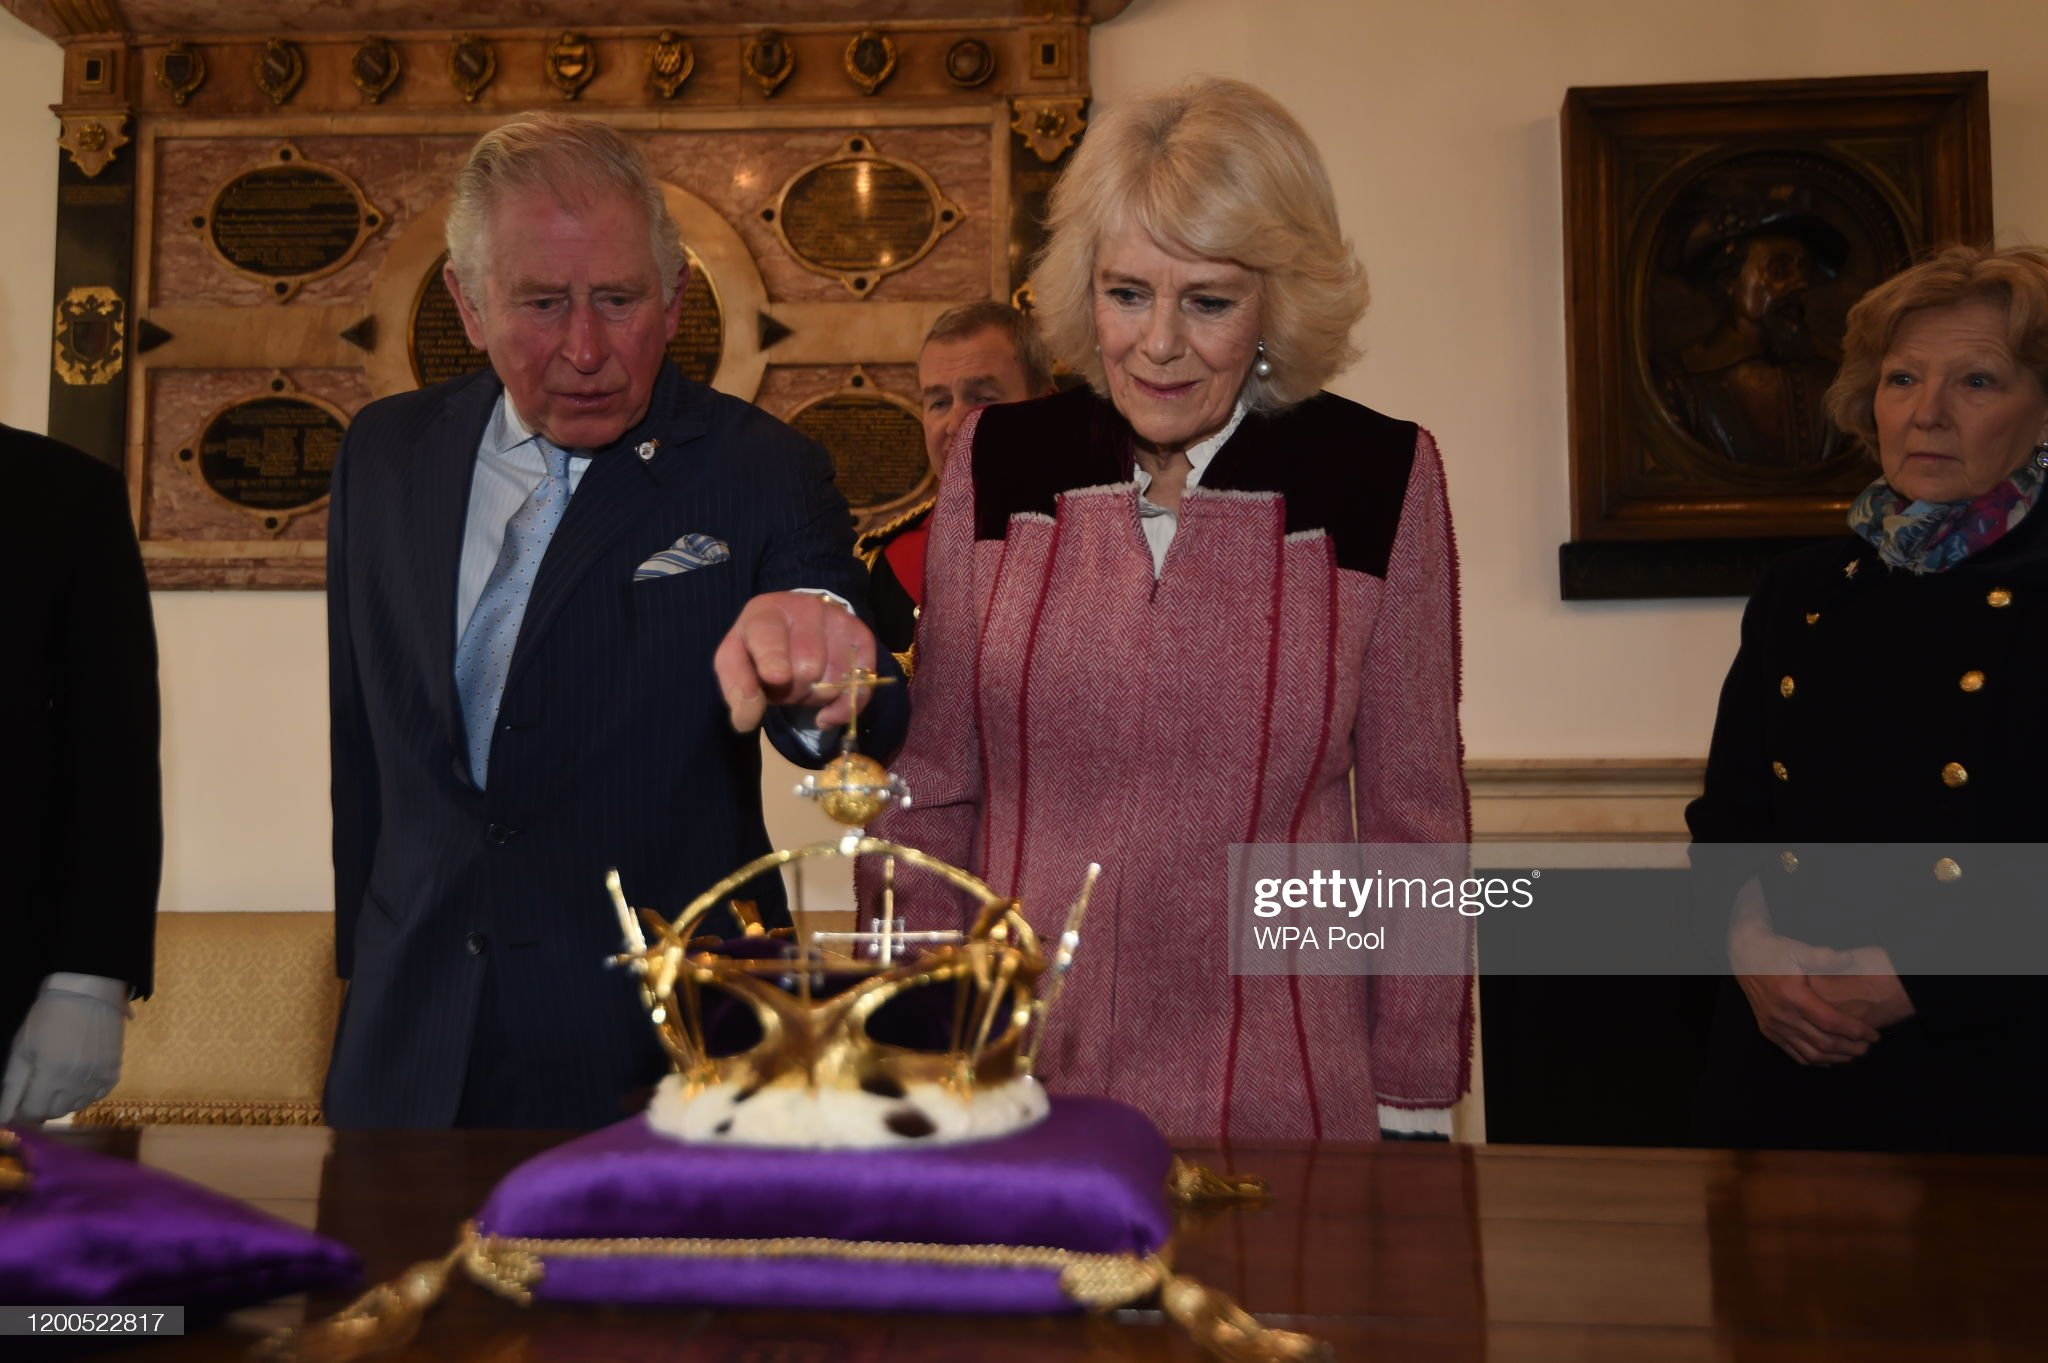 prince-charles-prince-of-wales-and-camilla-duchess-of-cornwall-visit-picture-id1200522817